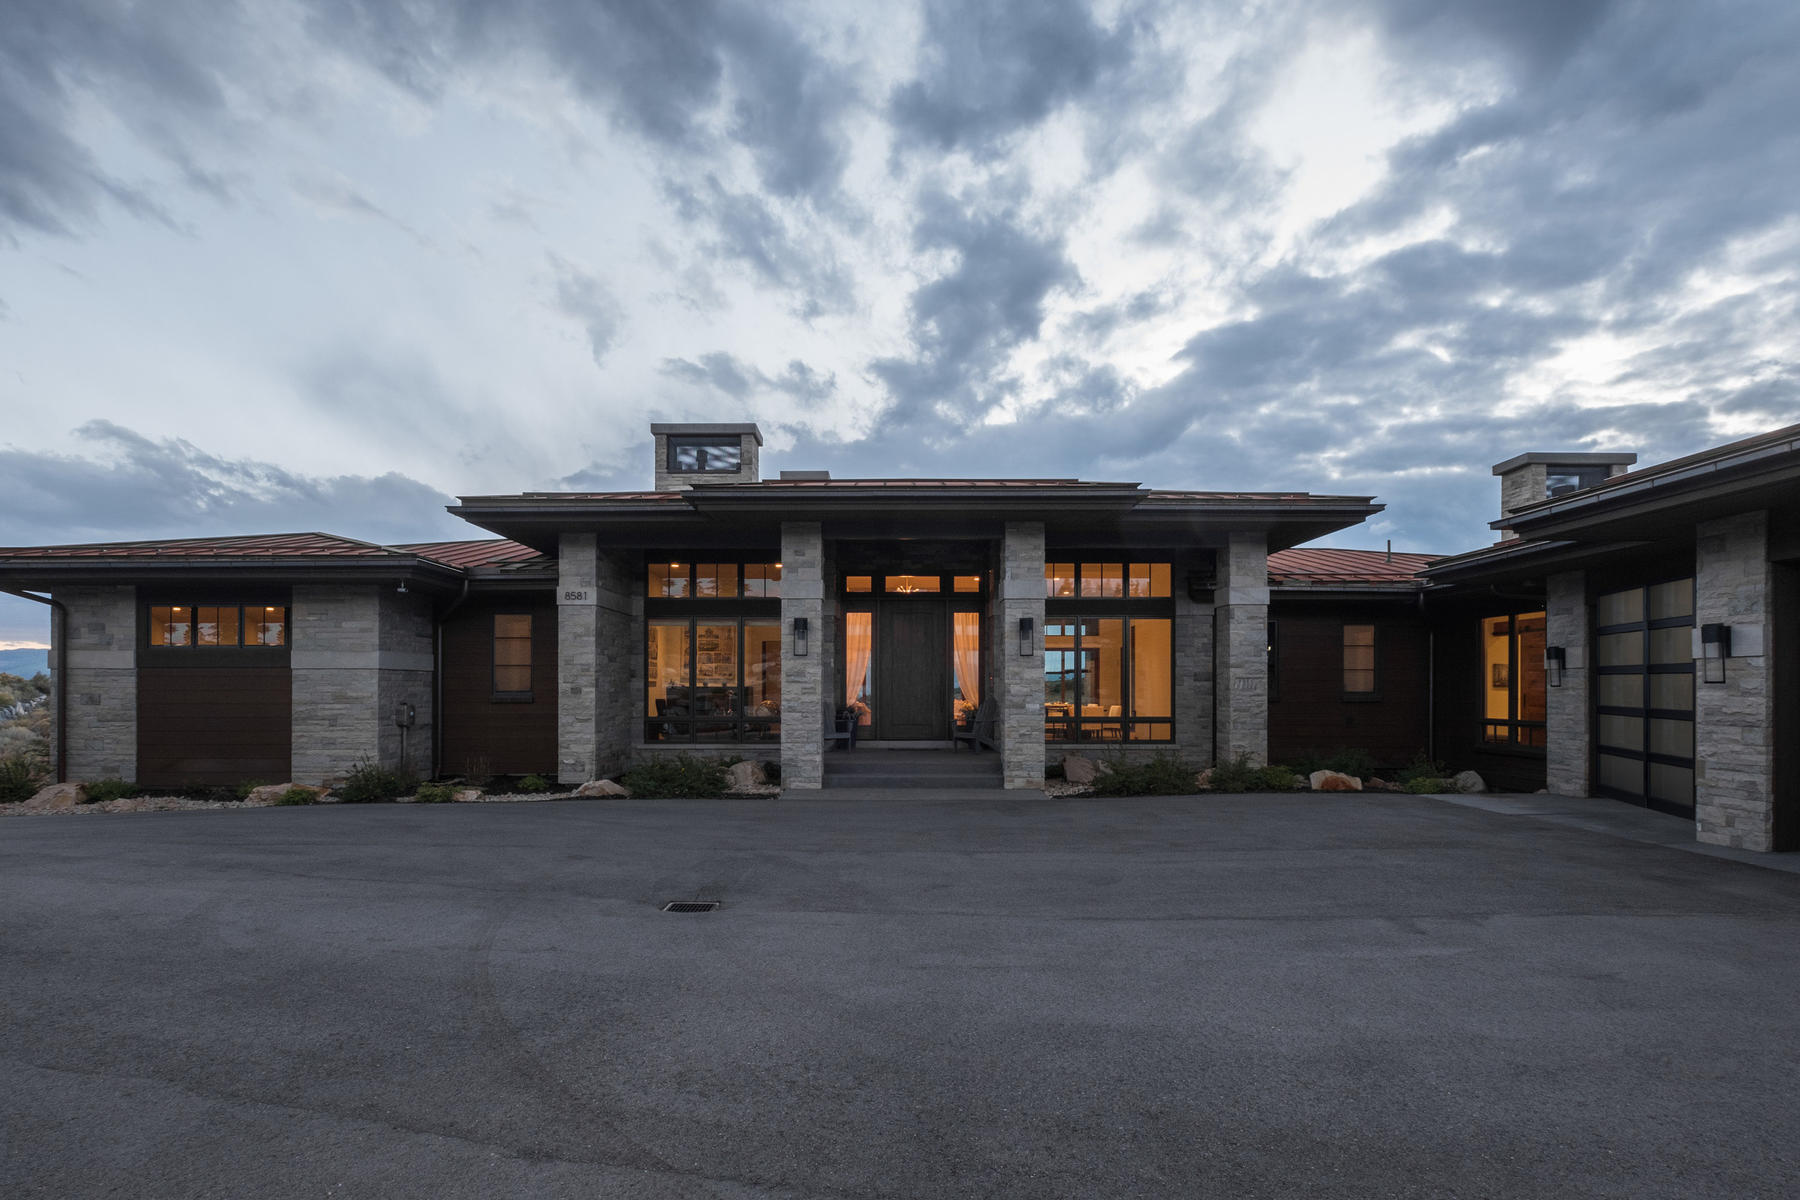 Moradia para Venda às Beautiful Contemporary Home Overlooking the 11th Hole of the Pete Dye Course 8581 N Marmot Circle Lot 91 Park City, Utah, 84098 Estados Unidos